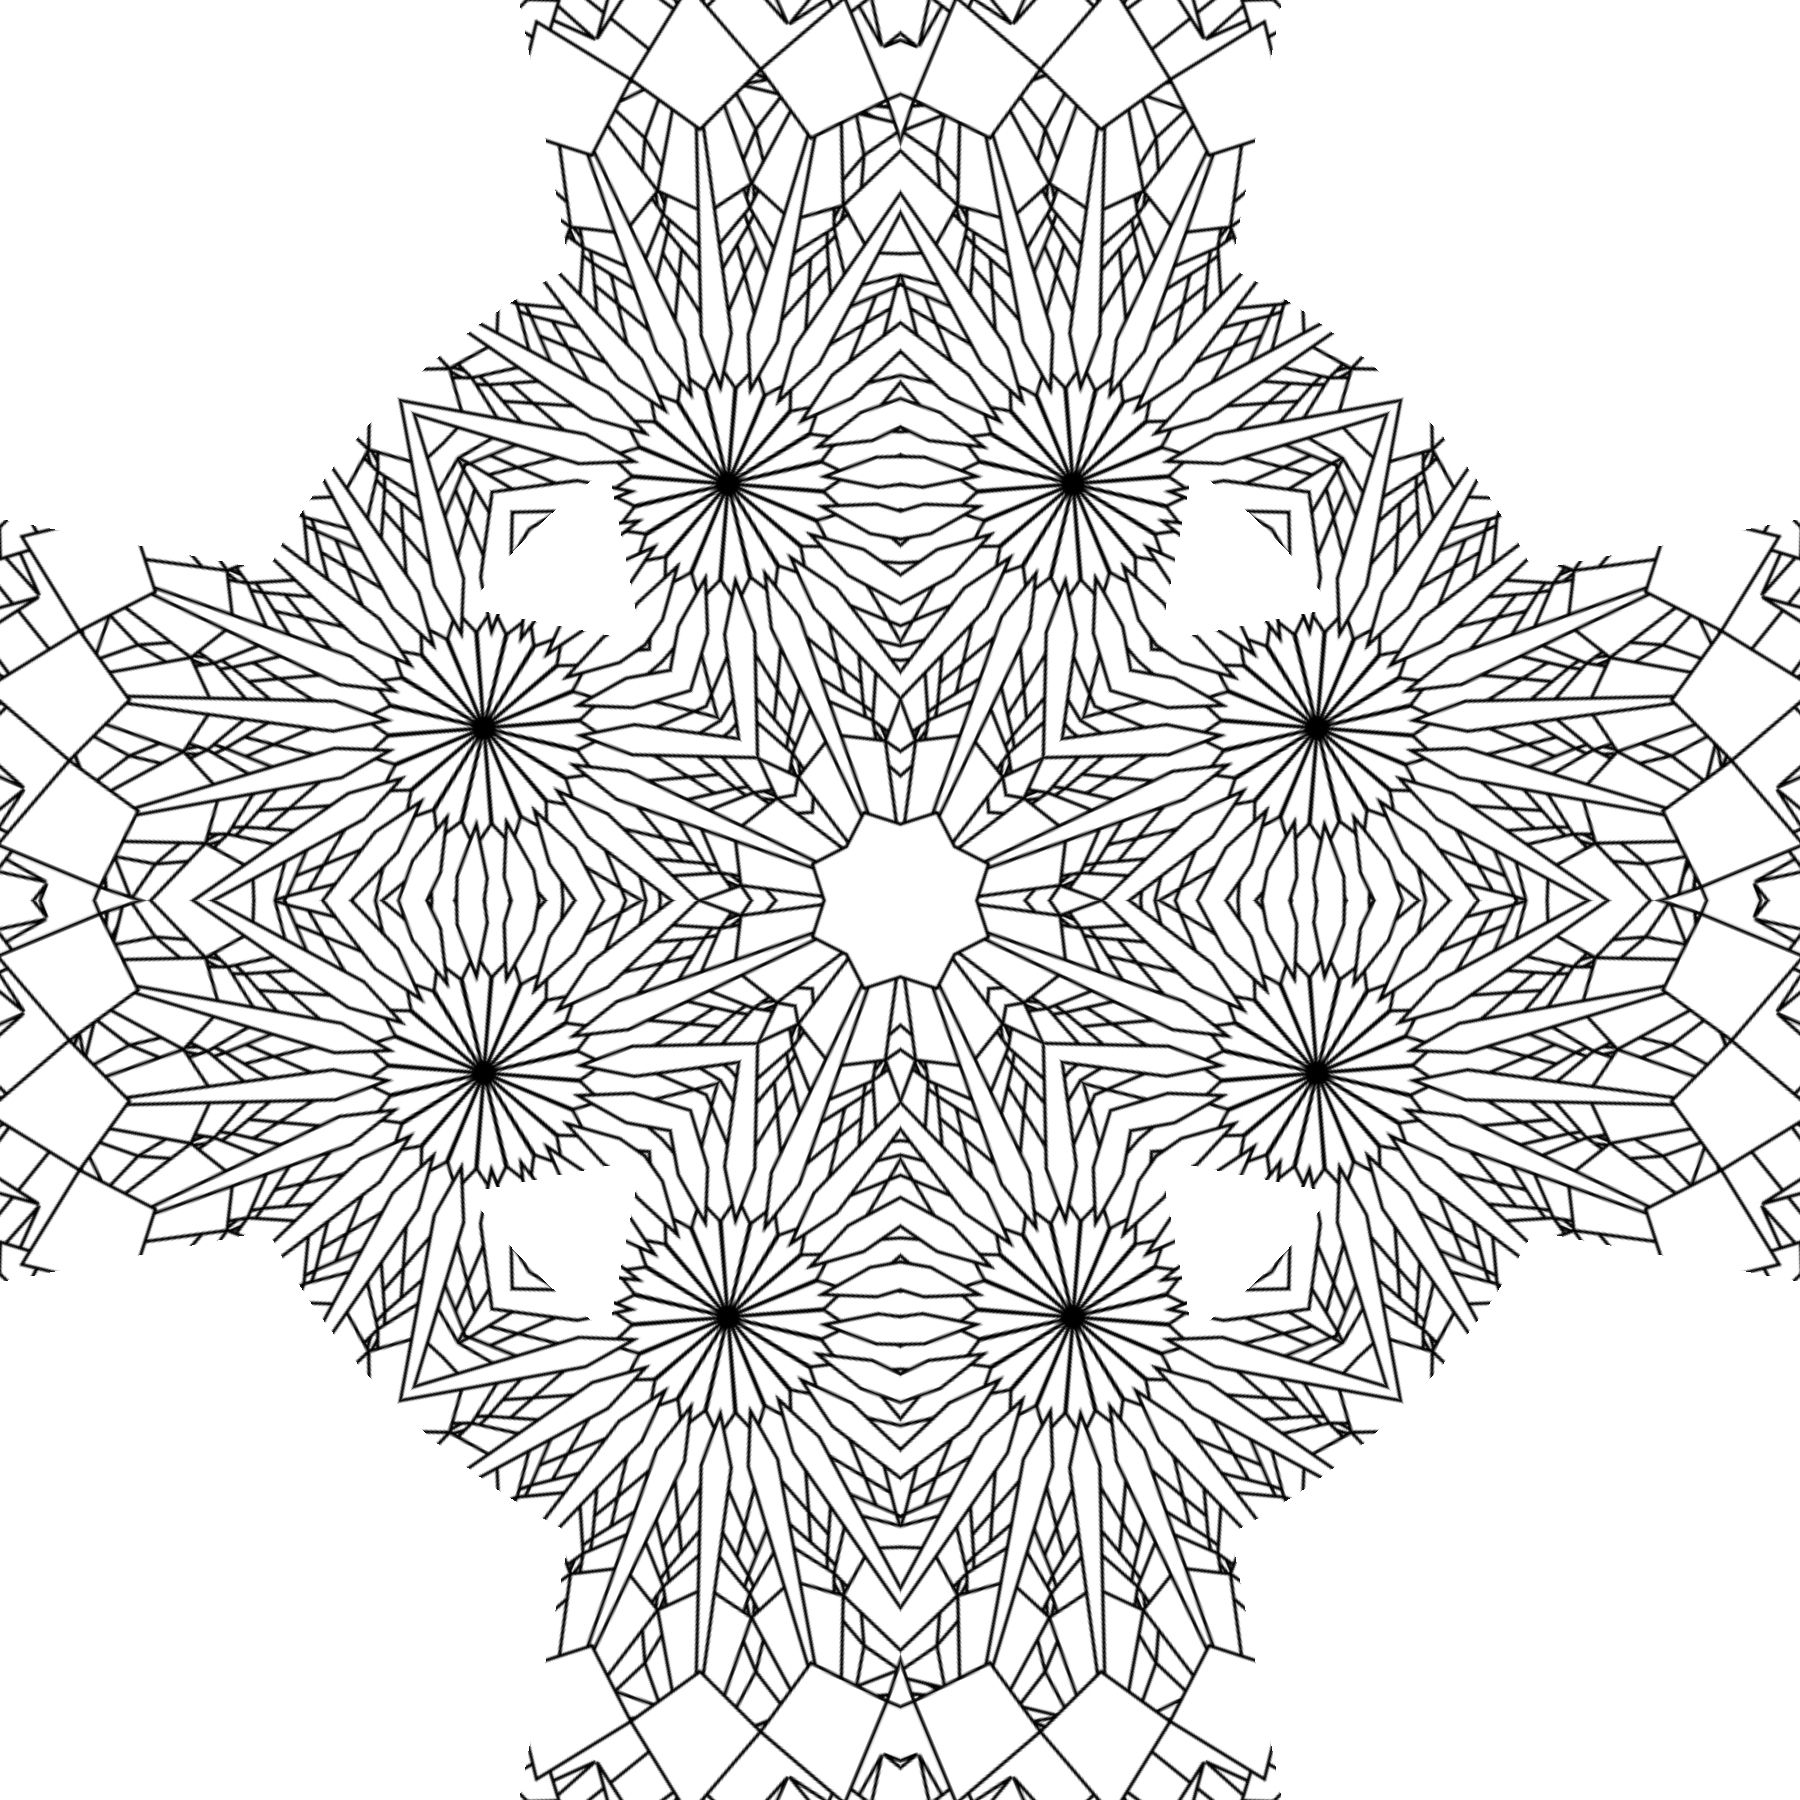 free coloring patterns free printable abstract coloring pages for adults free patterns coloring